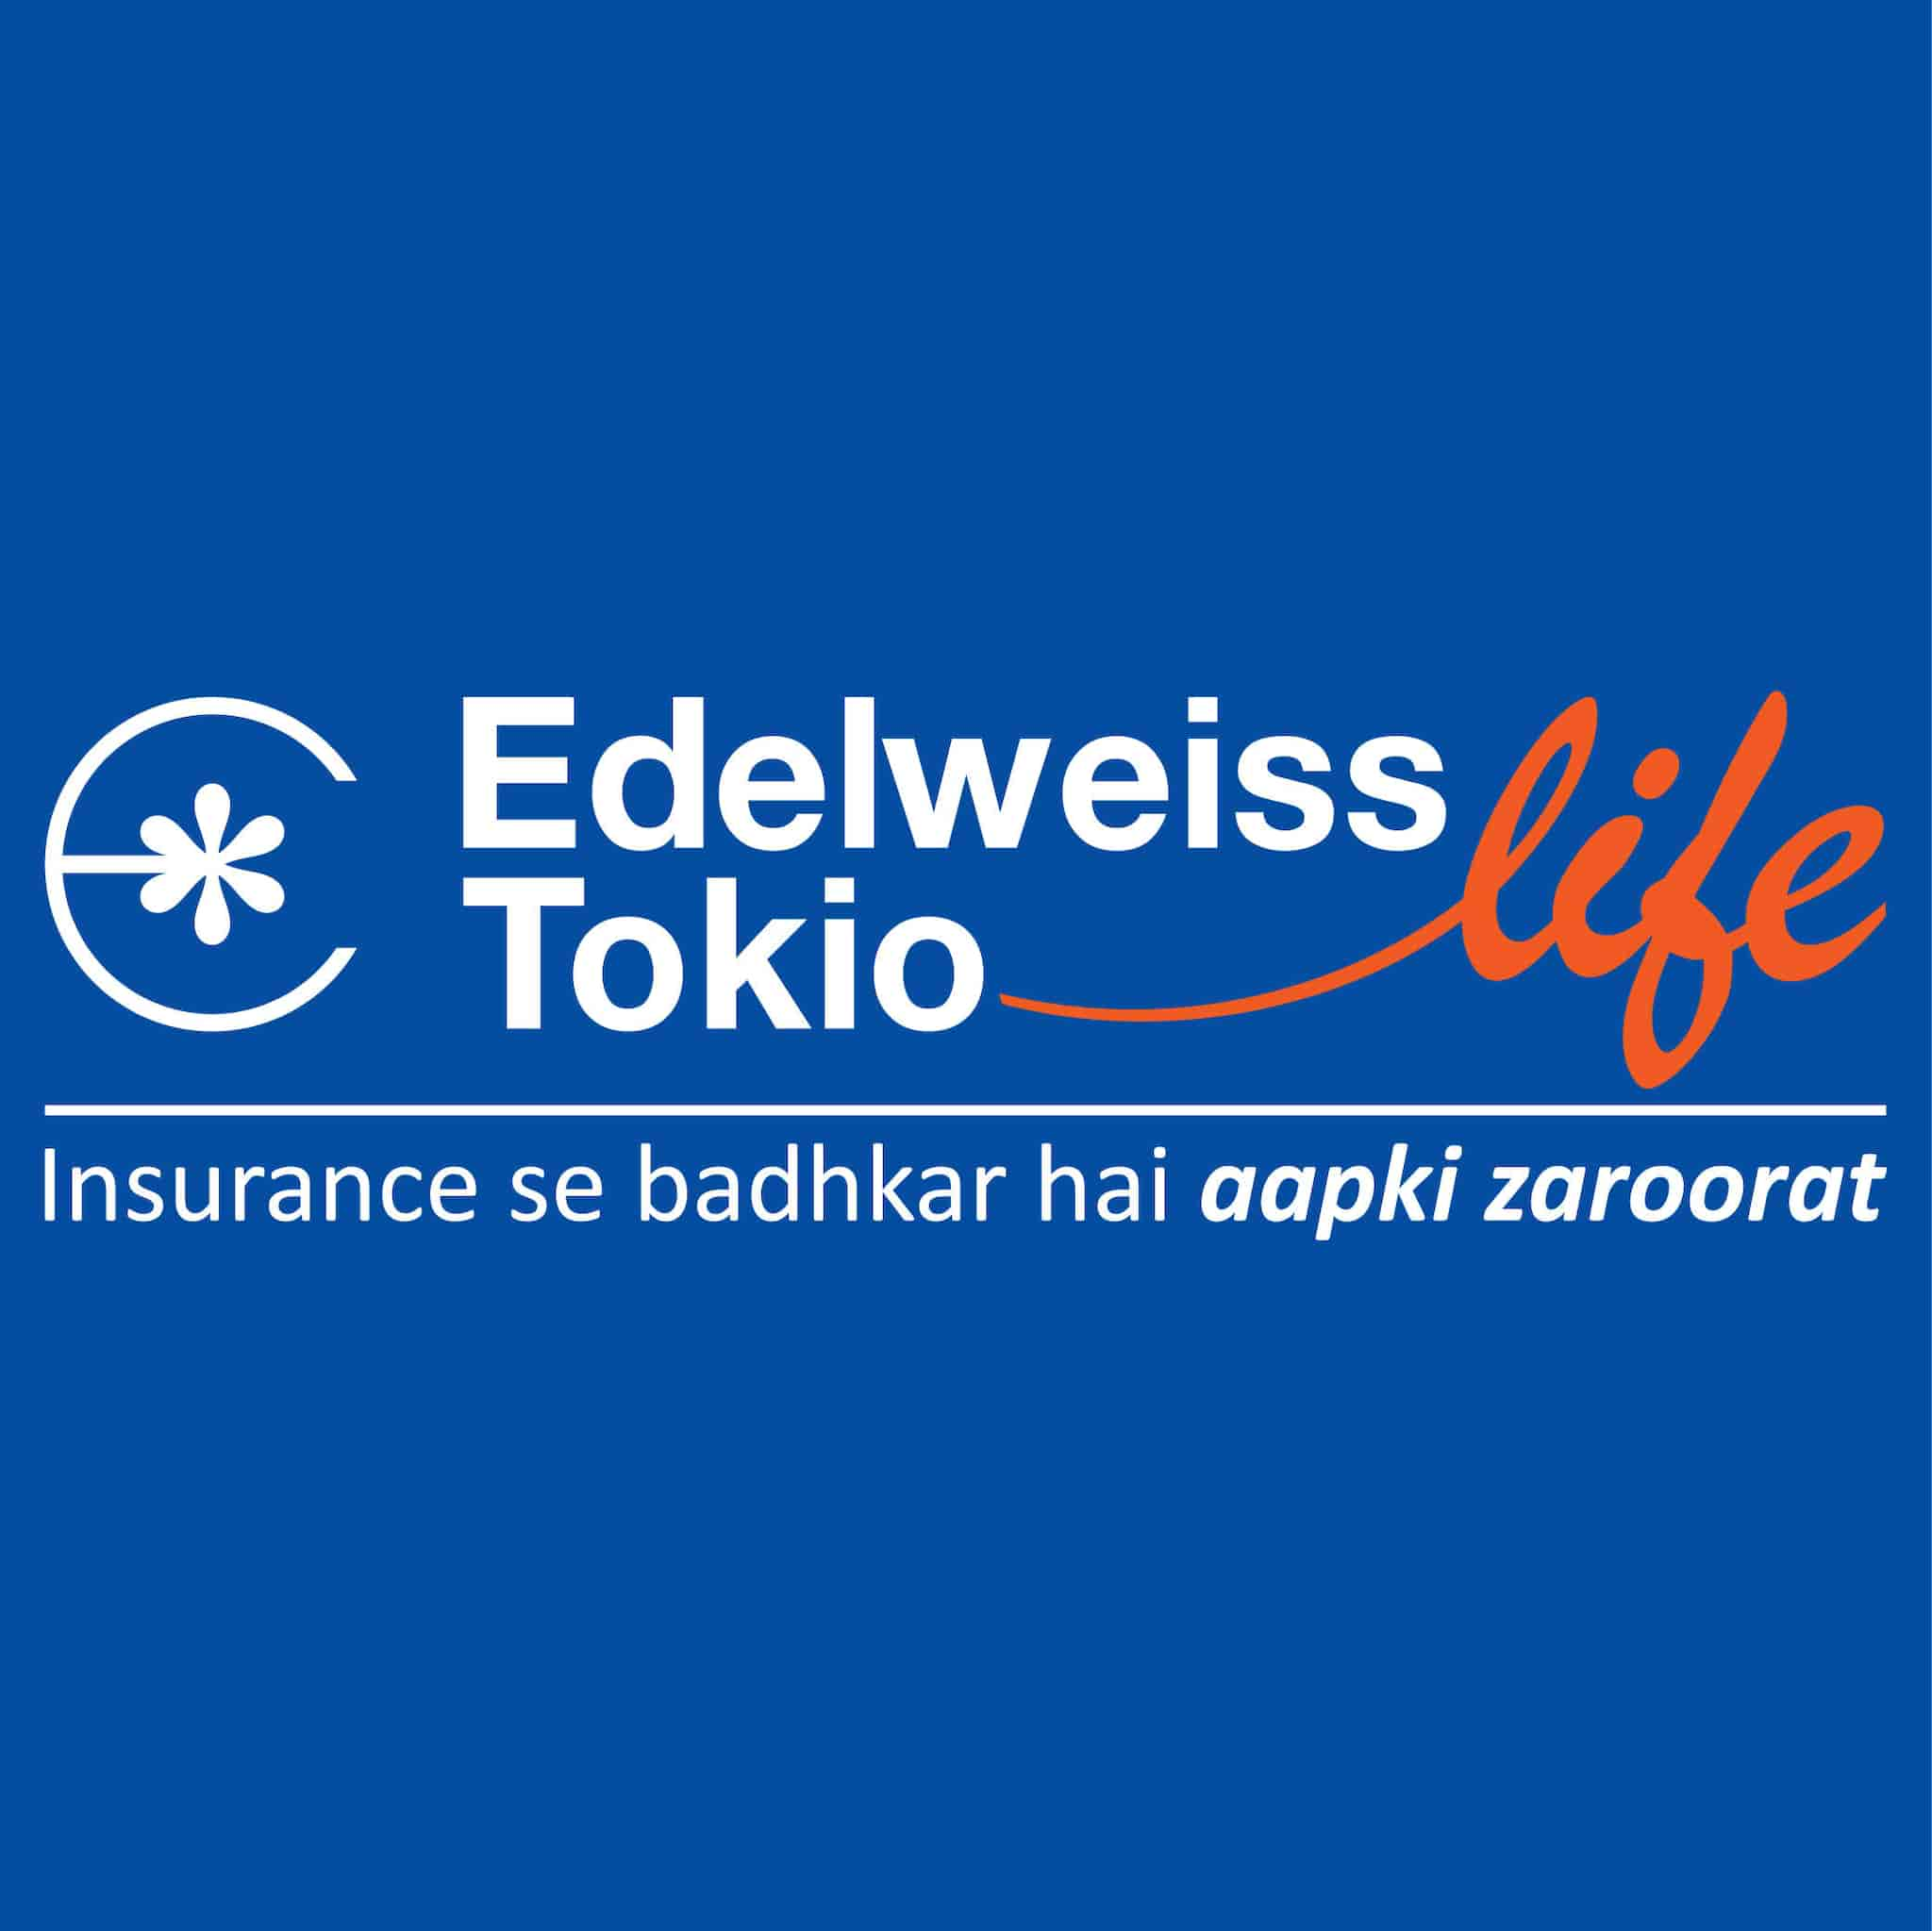 Edelweiss Tokio Life Insurance Company Limited, M P Nagar